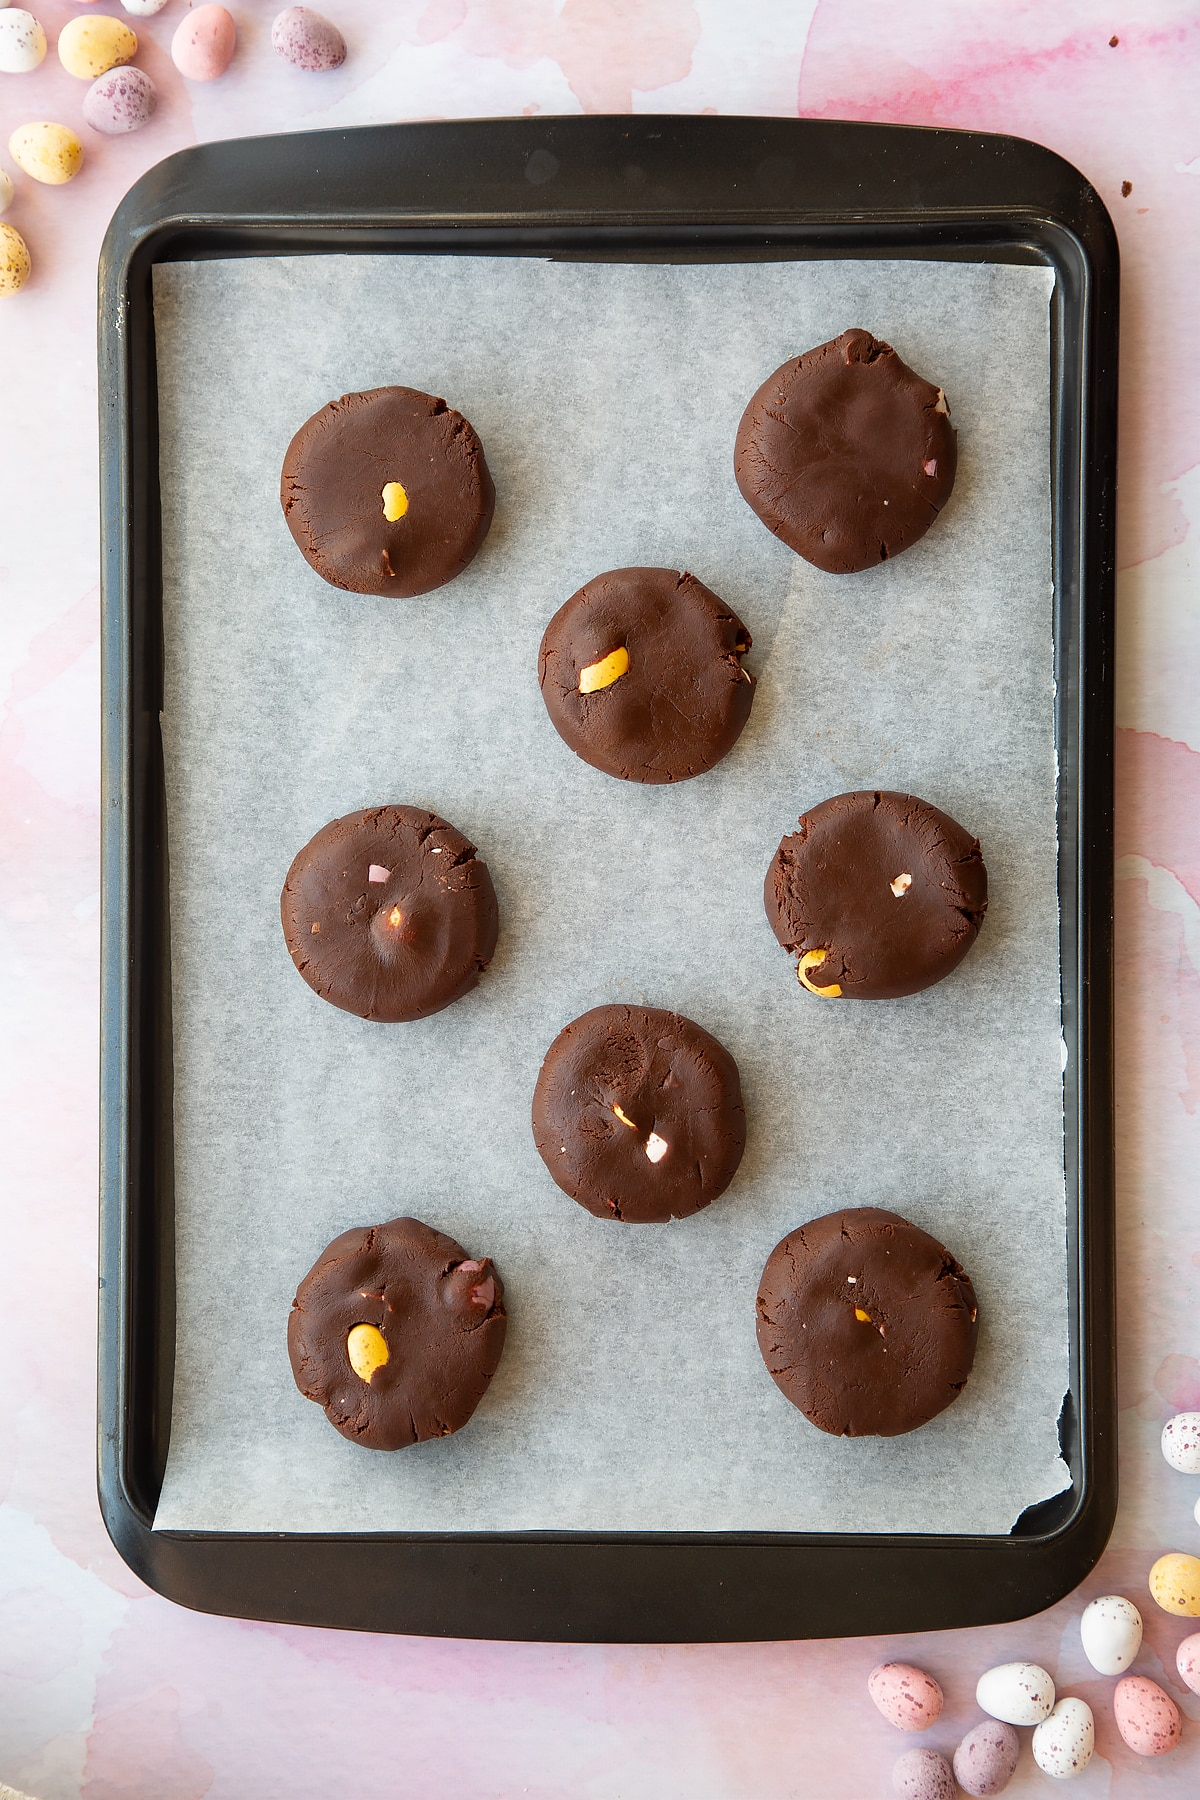 Chocolate Easter cookie dough discs on a tray lined with baking paper.